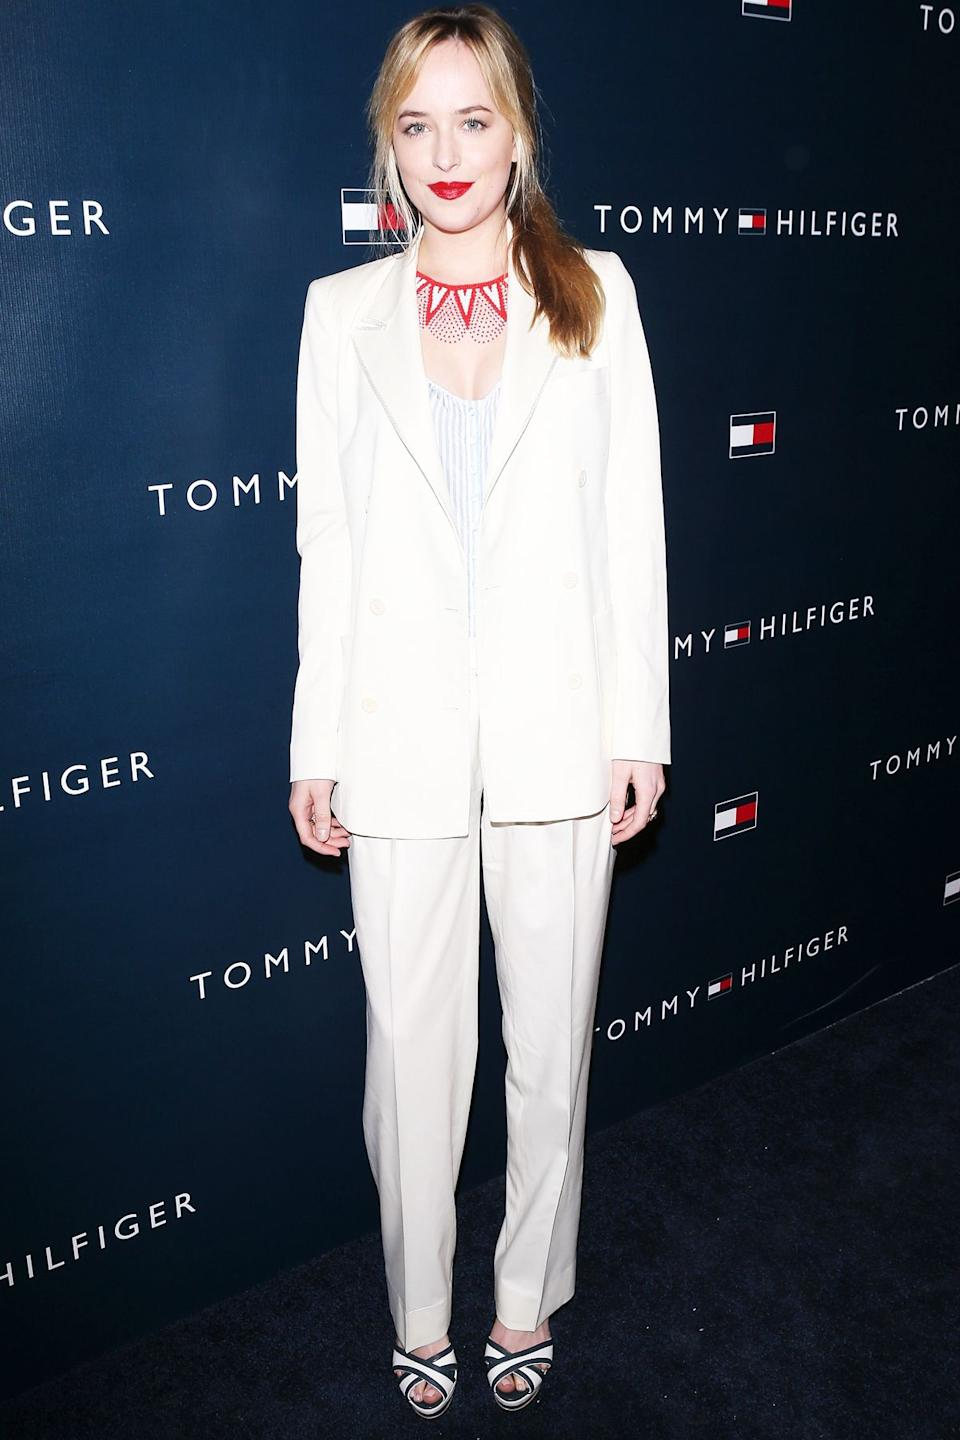 Style Notes: We could dedicate an entire article on Dakota Johnson's love of suits. However, the main takeaways are longline blazers, tapered trousers, and classic hues.